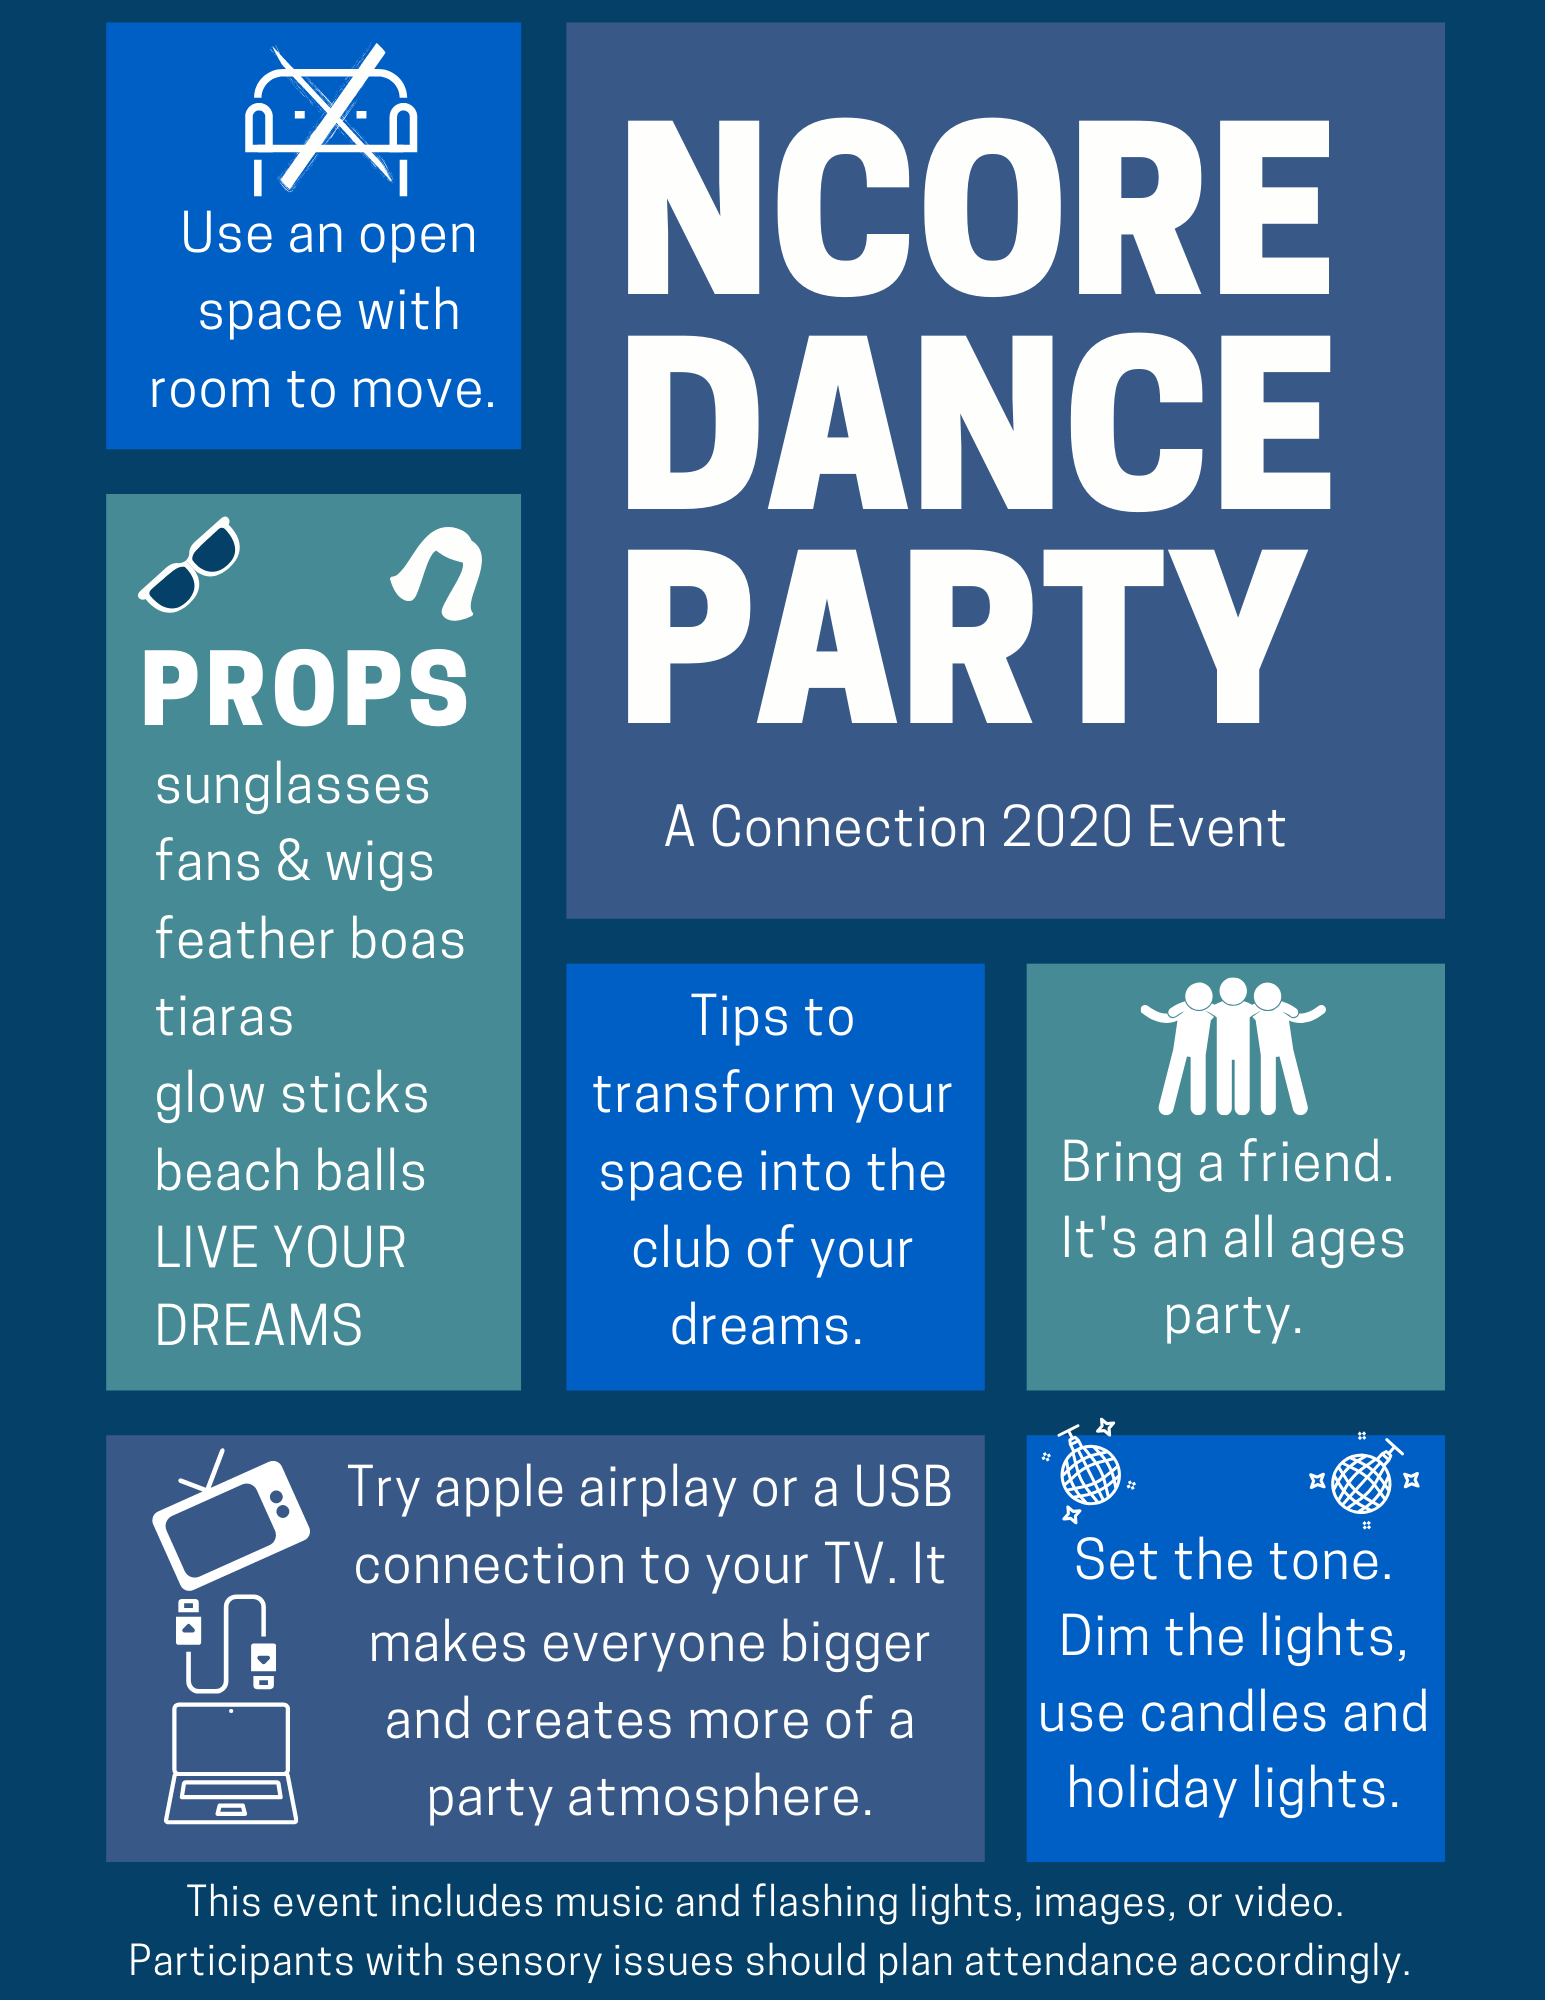 dance party tips